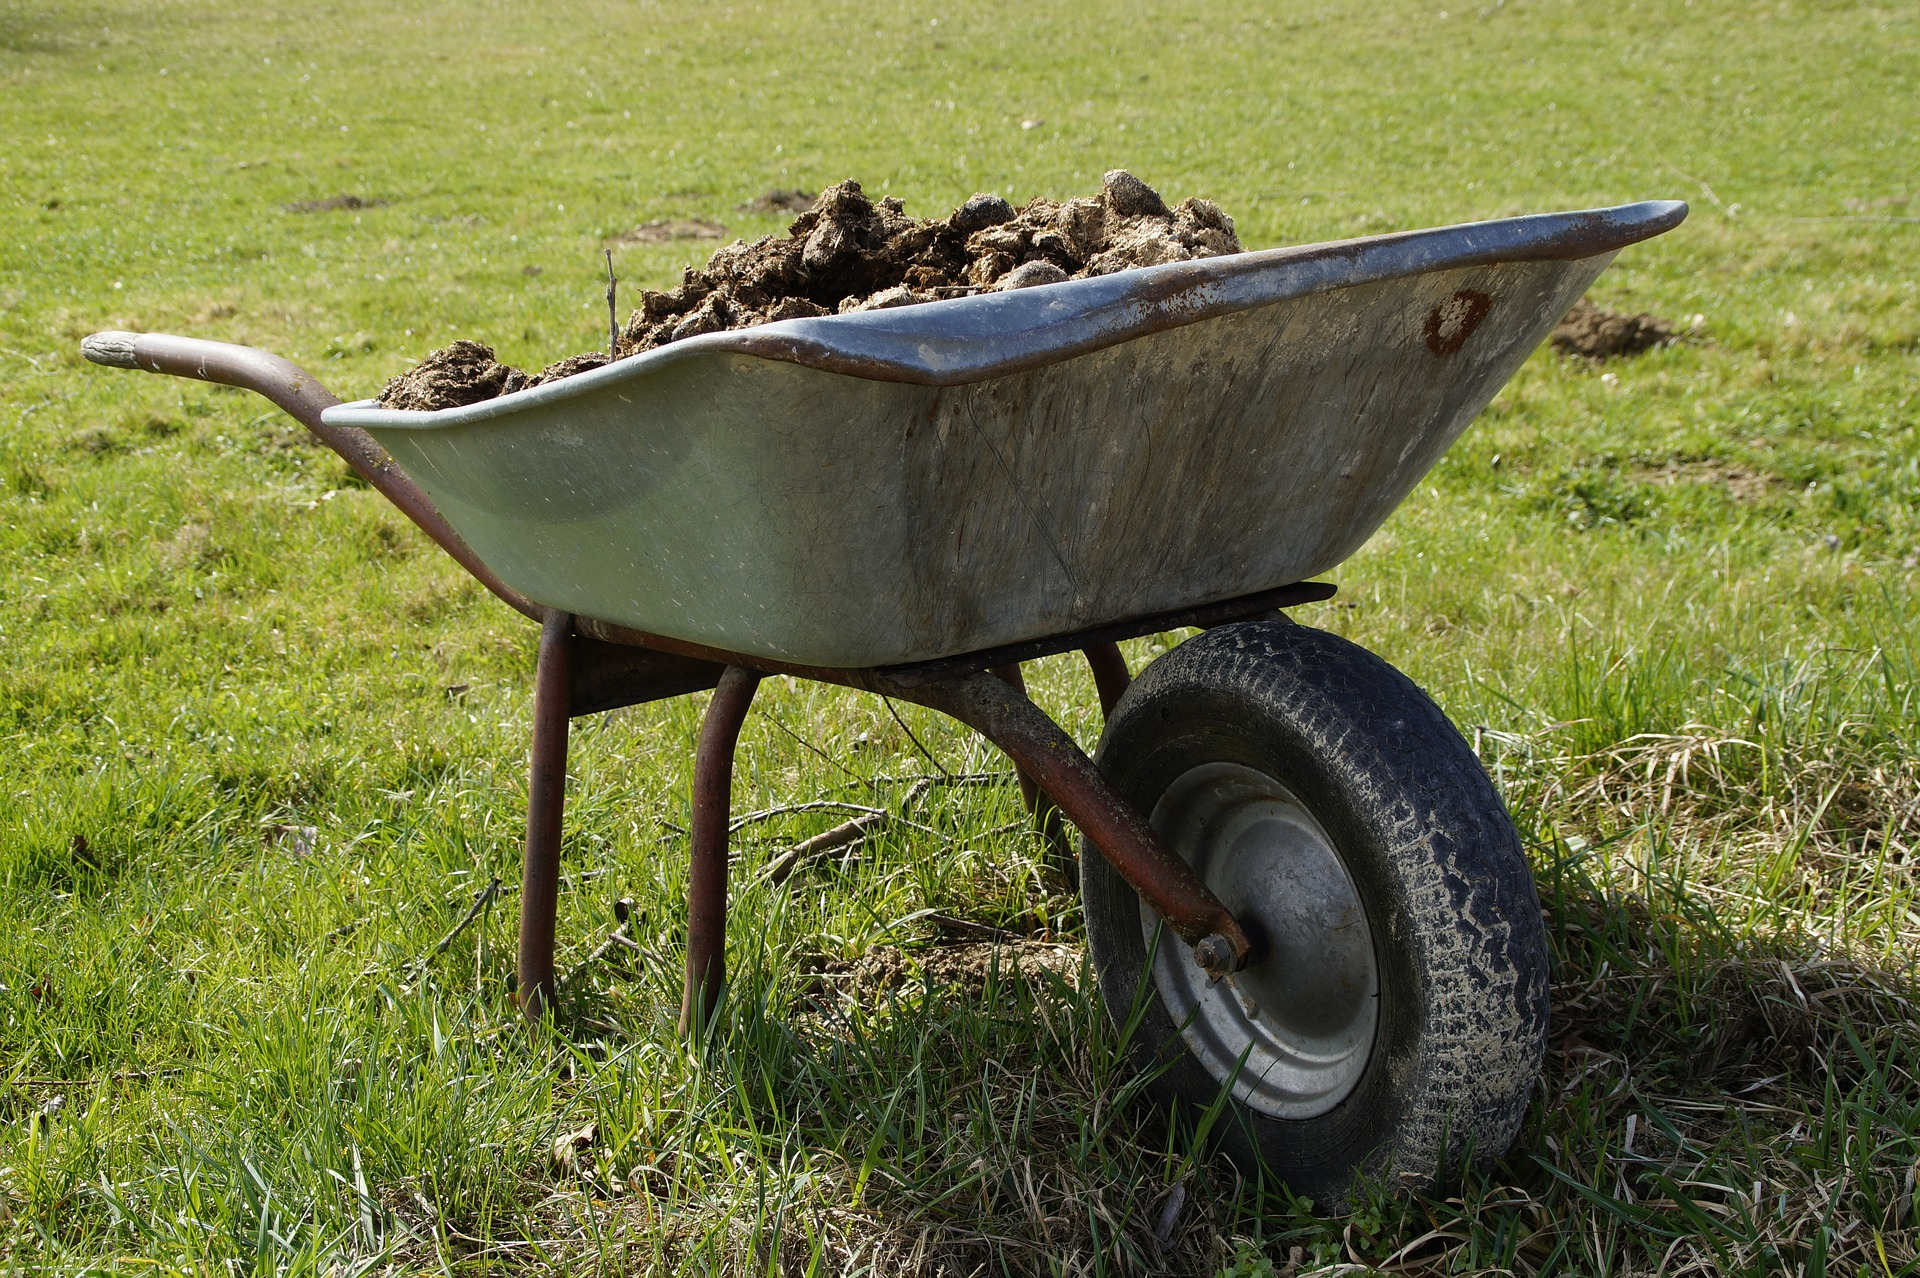 Manual handling in agriculture